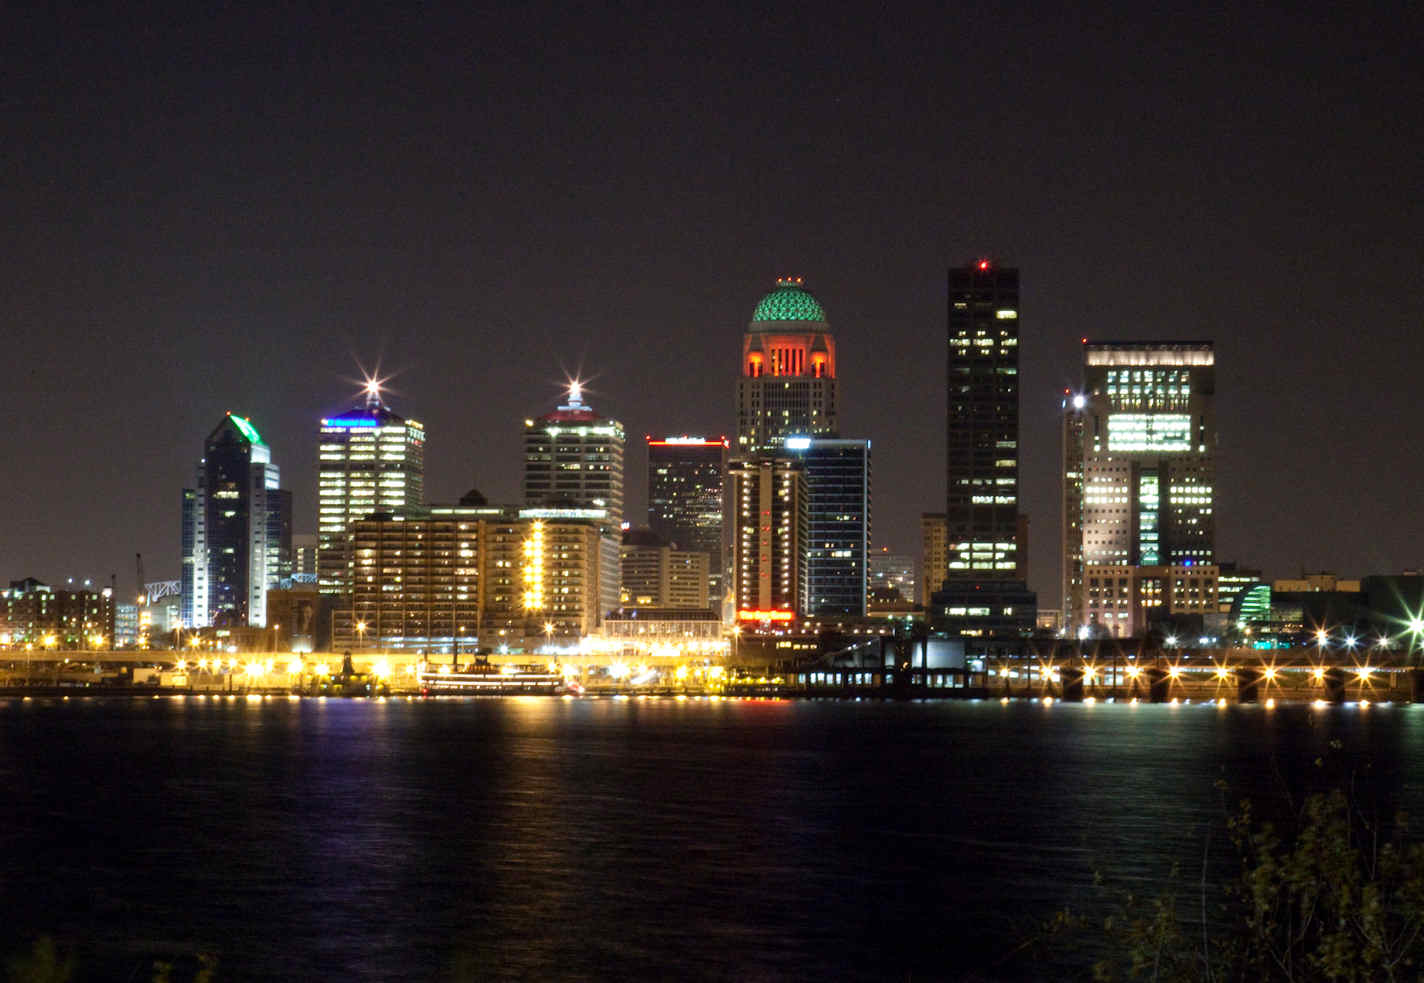 Downtown Louisville skyline at night